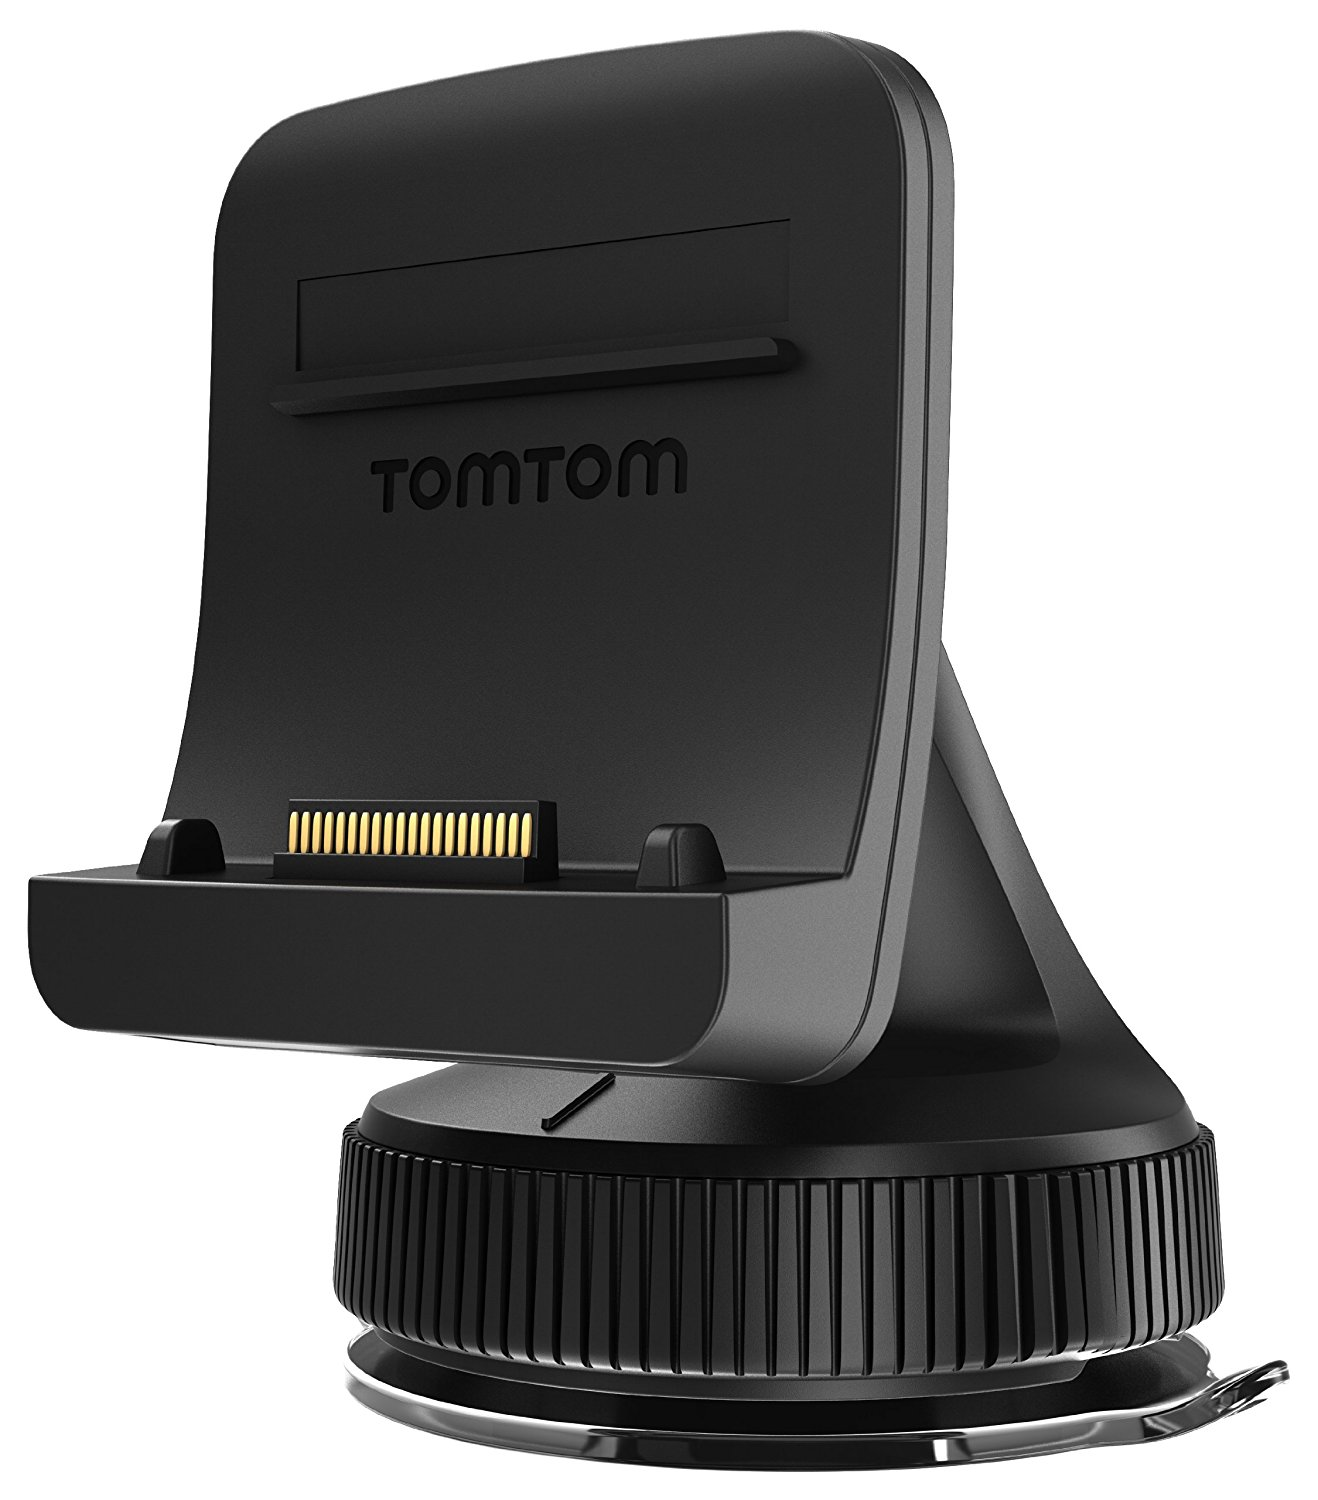 tomtom active magnetic mount charger go520 620. Black Bedroom Furniture Sets. Home Design Ideas